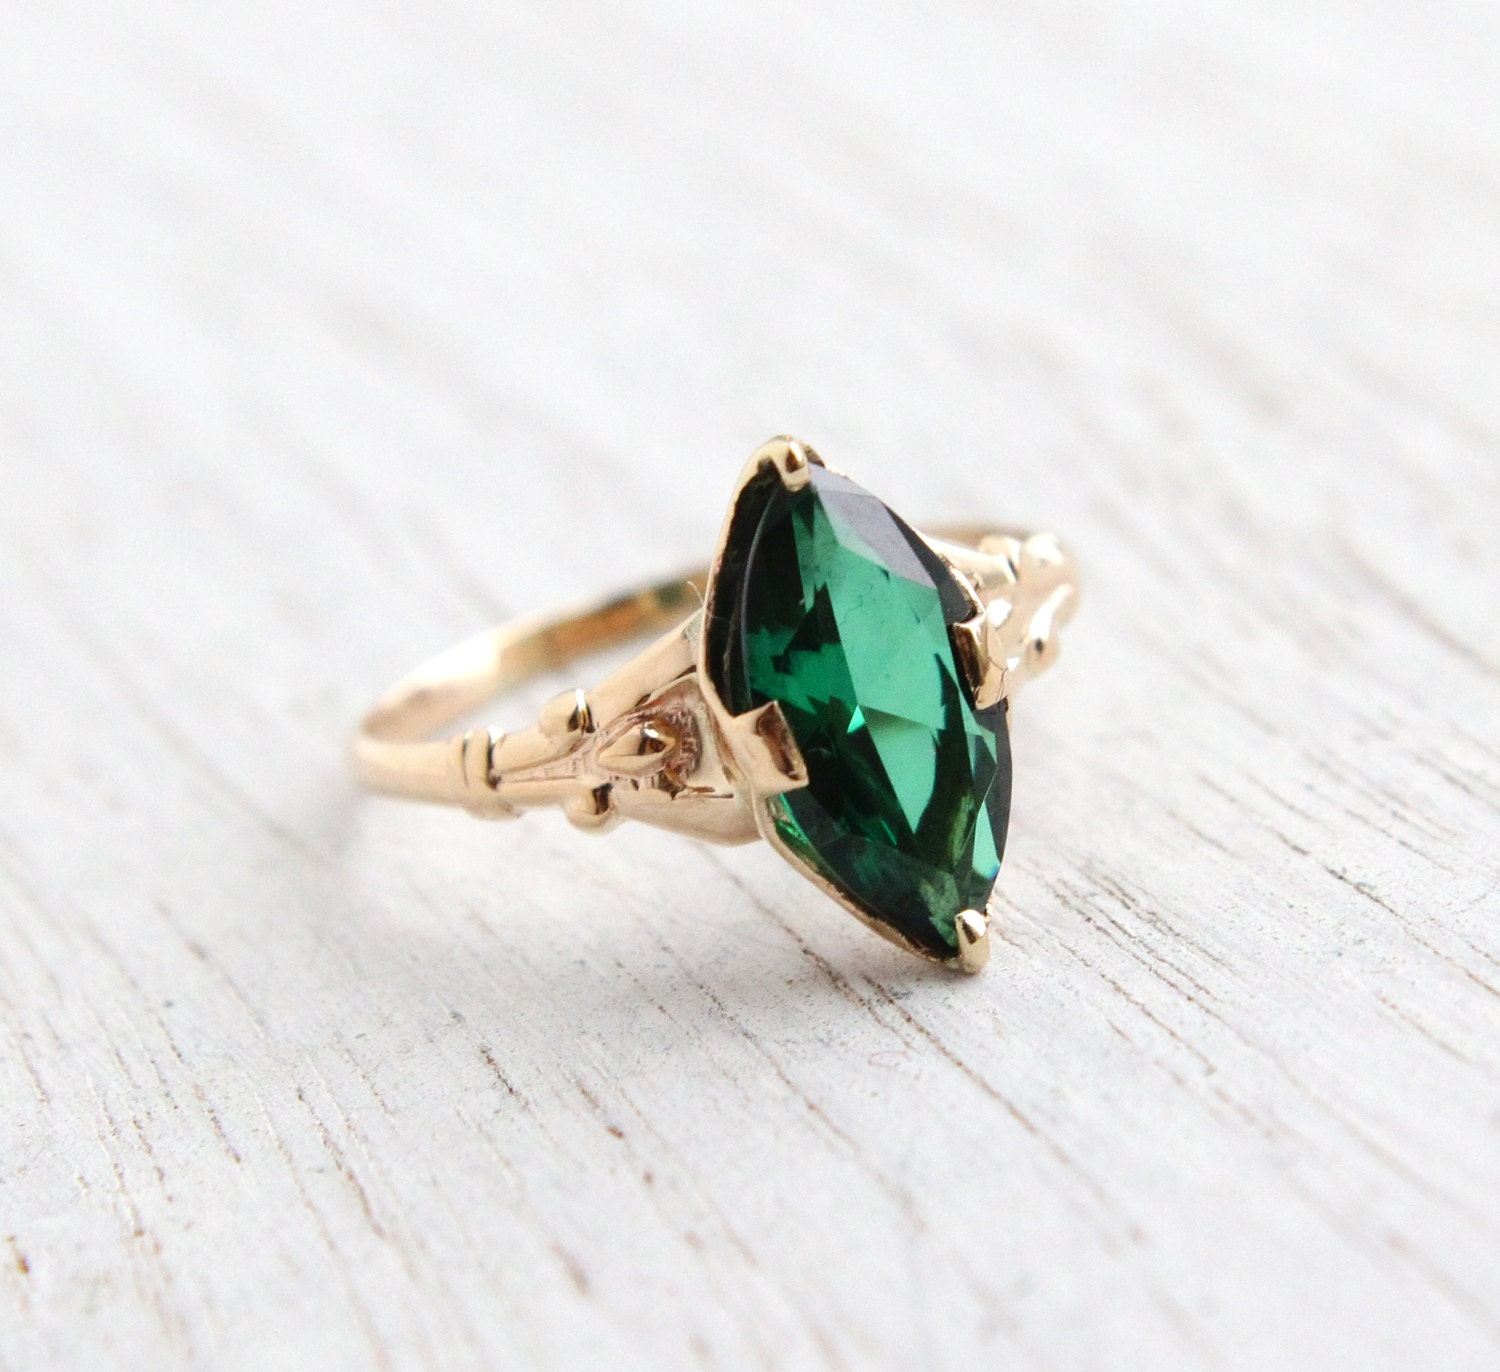 Antique 10k Yellow Gold Emerald Green Stone Ring Vintage